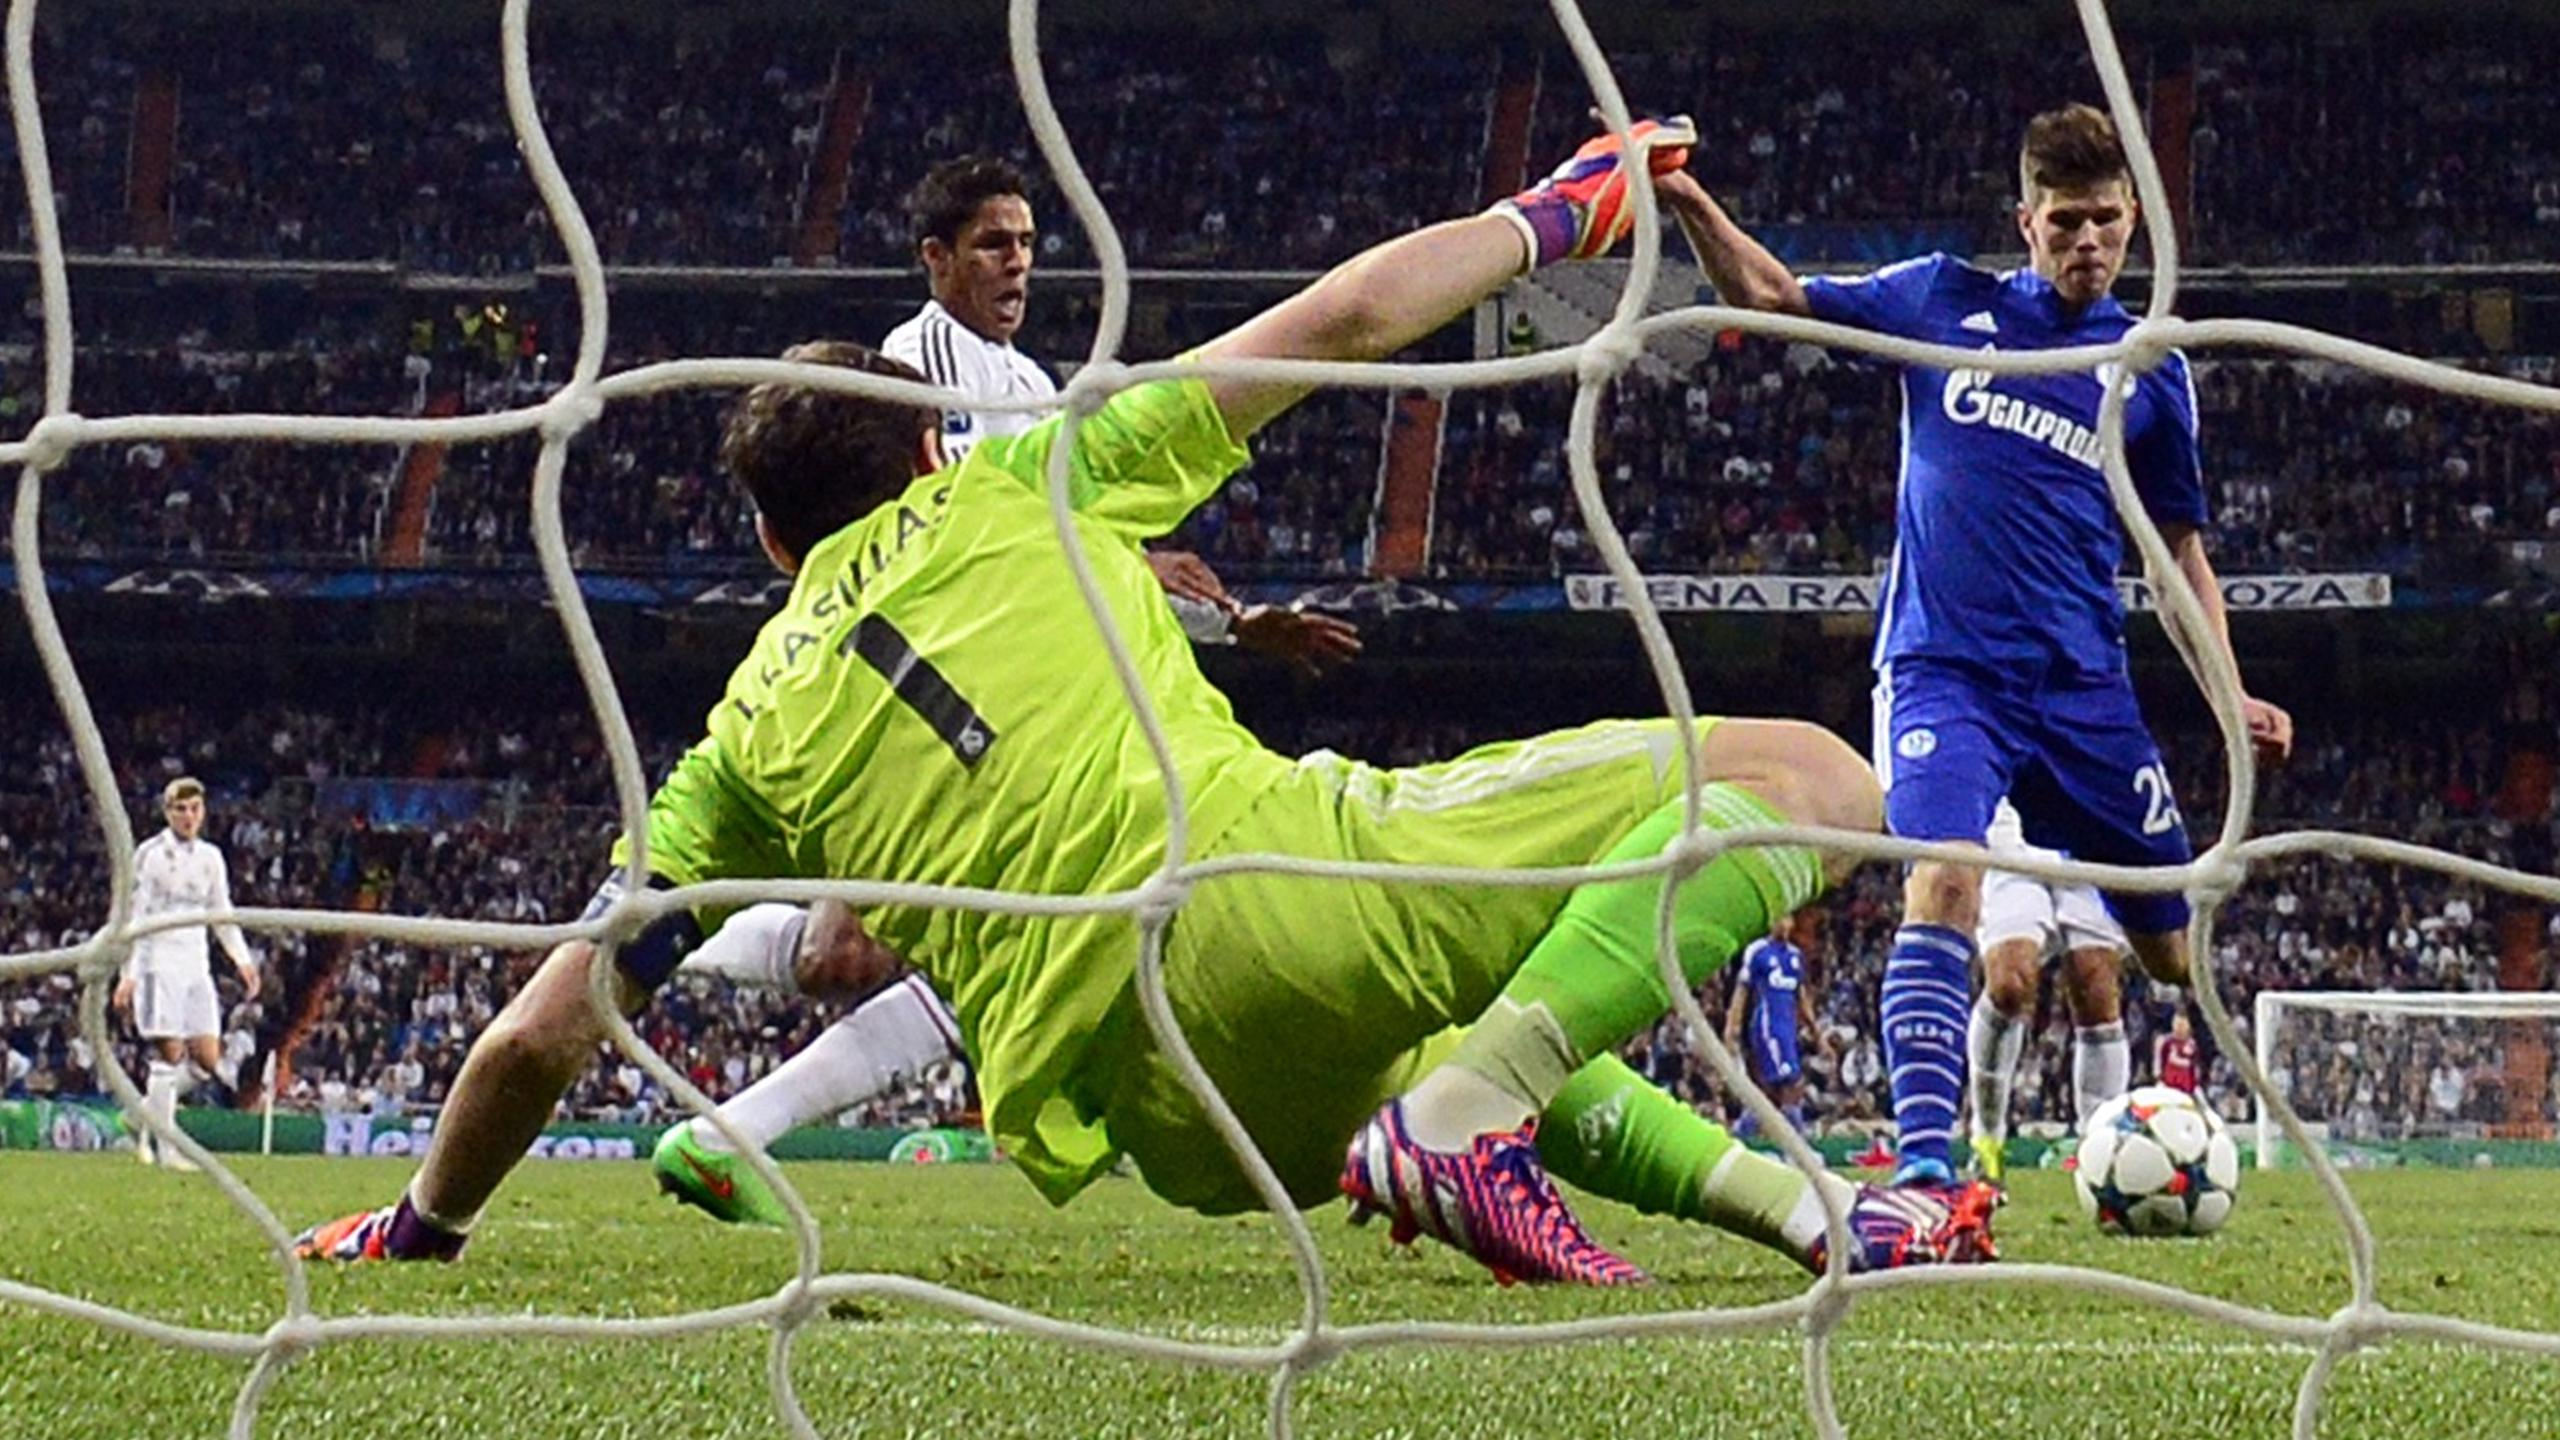 Iker Casillas (Real Madrid) gegen Klaas-Jan Huntelaar (FC Schalke 04)